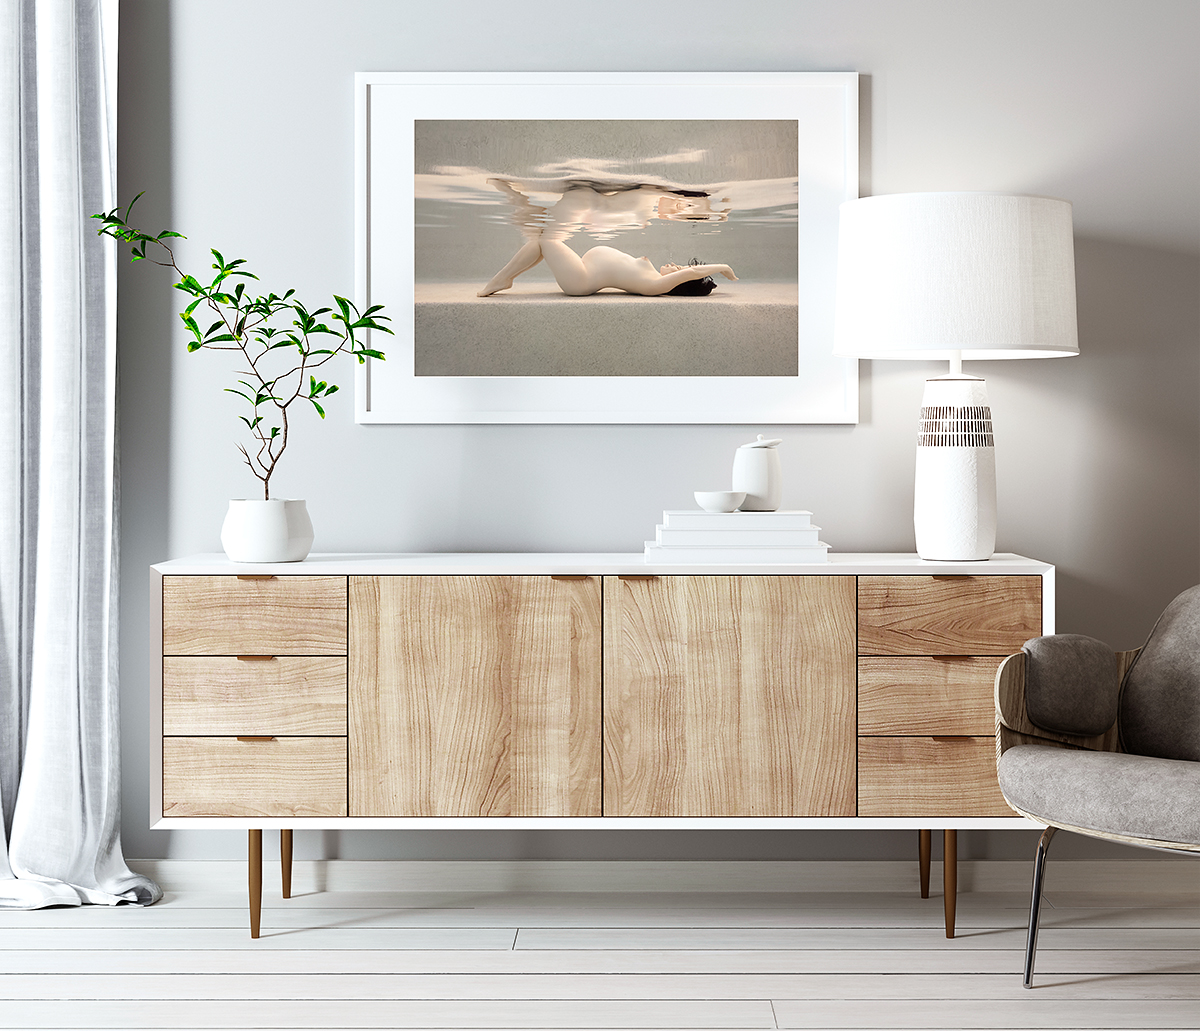 framed photo of a nude pregnant woman, displayed above a sideboard